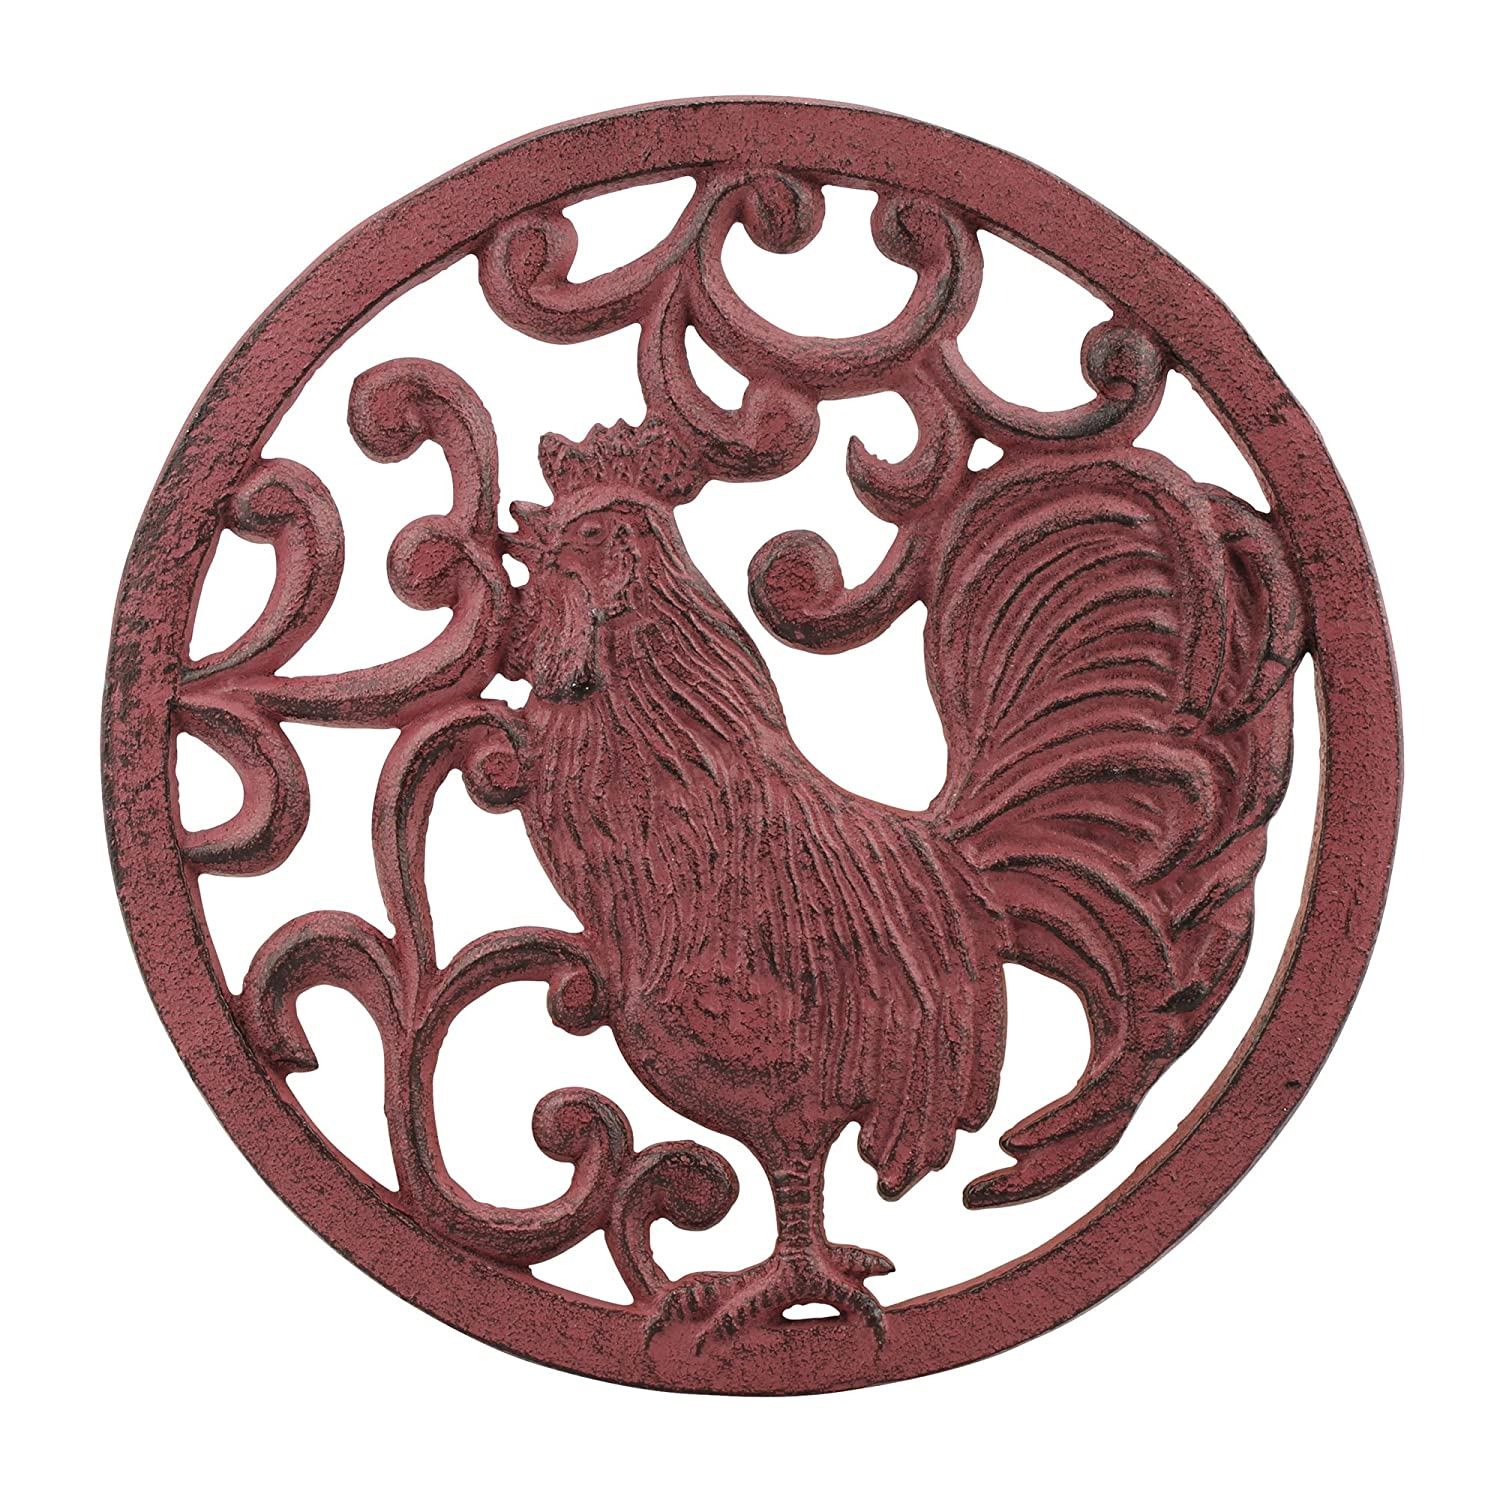 Stonebriar Farmhouse Red Cast Iron Rooster Trivet